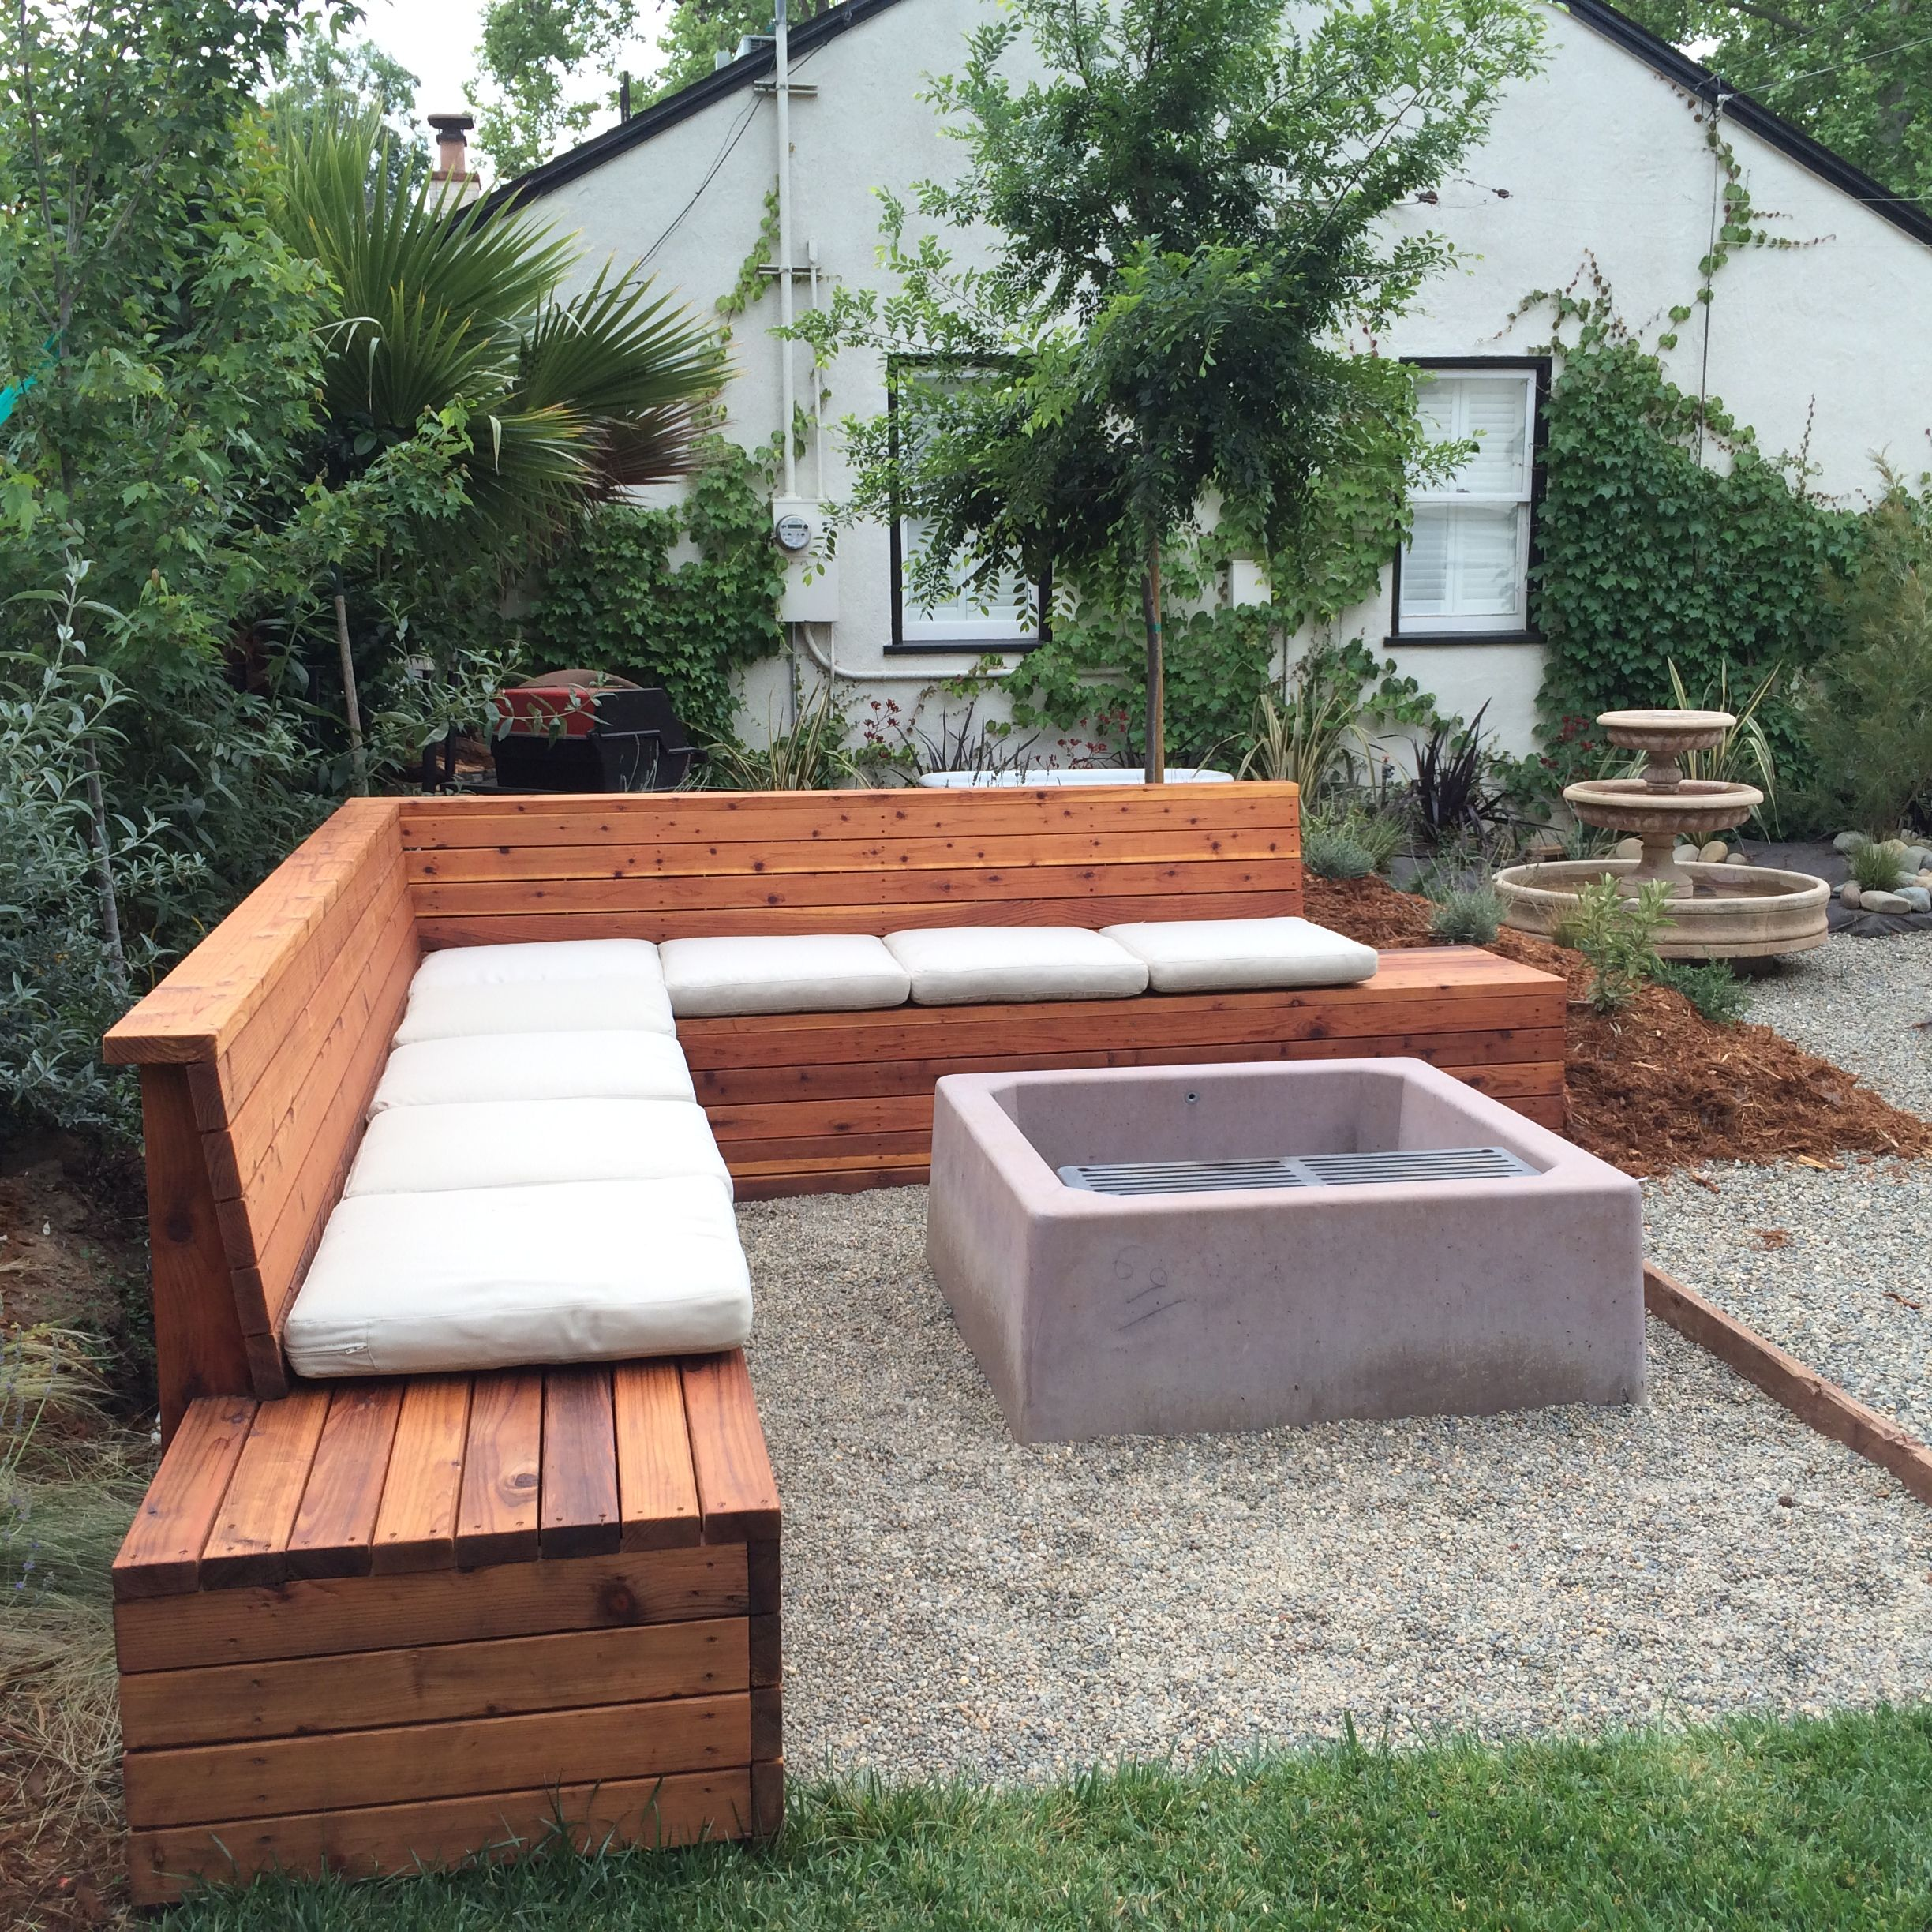 We sealed it then added cushions | Outdoor seating areas ... on Back Garden Seating Area Ideas  id=71199